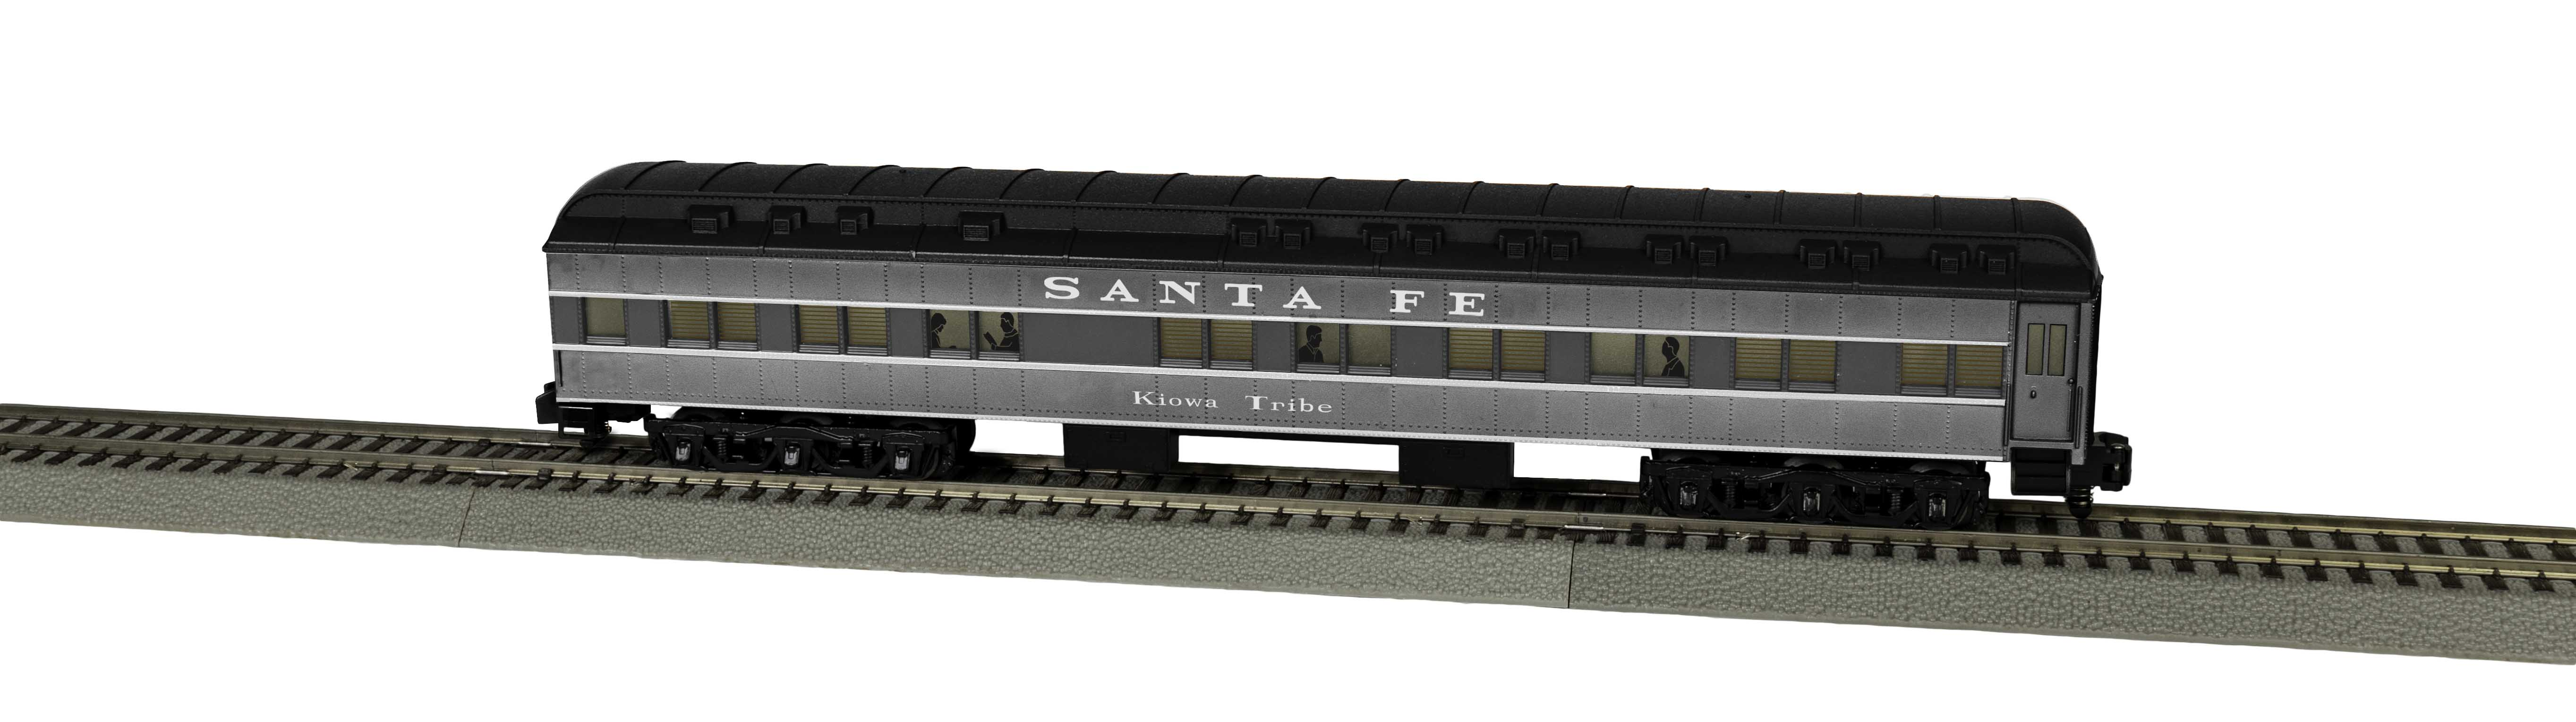 Lionel 2019271 S Santa Fe Heavyweight Sleeper Kiowa Tribe